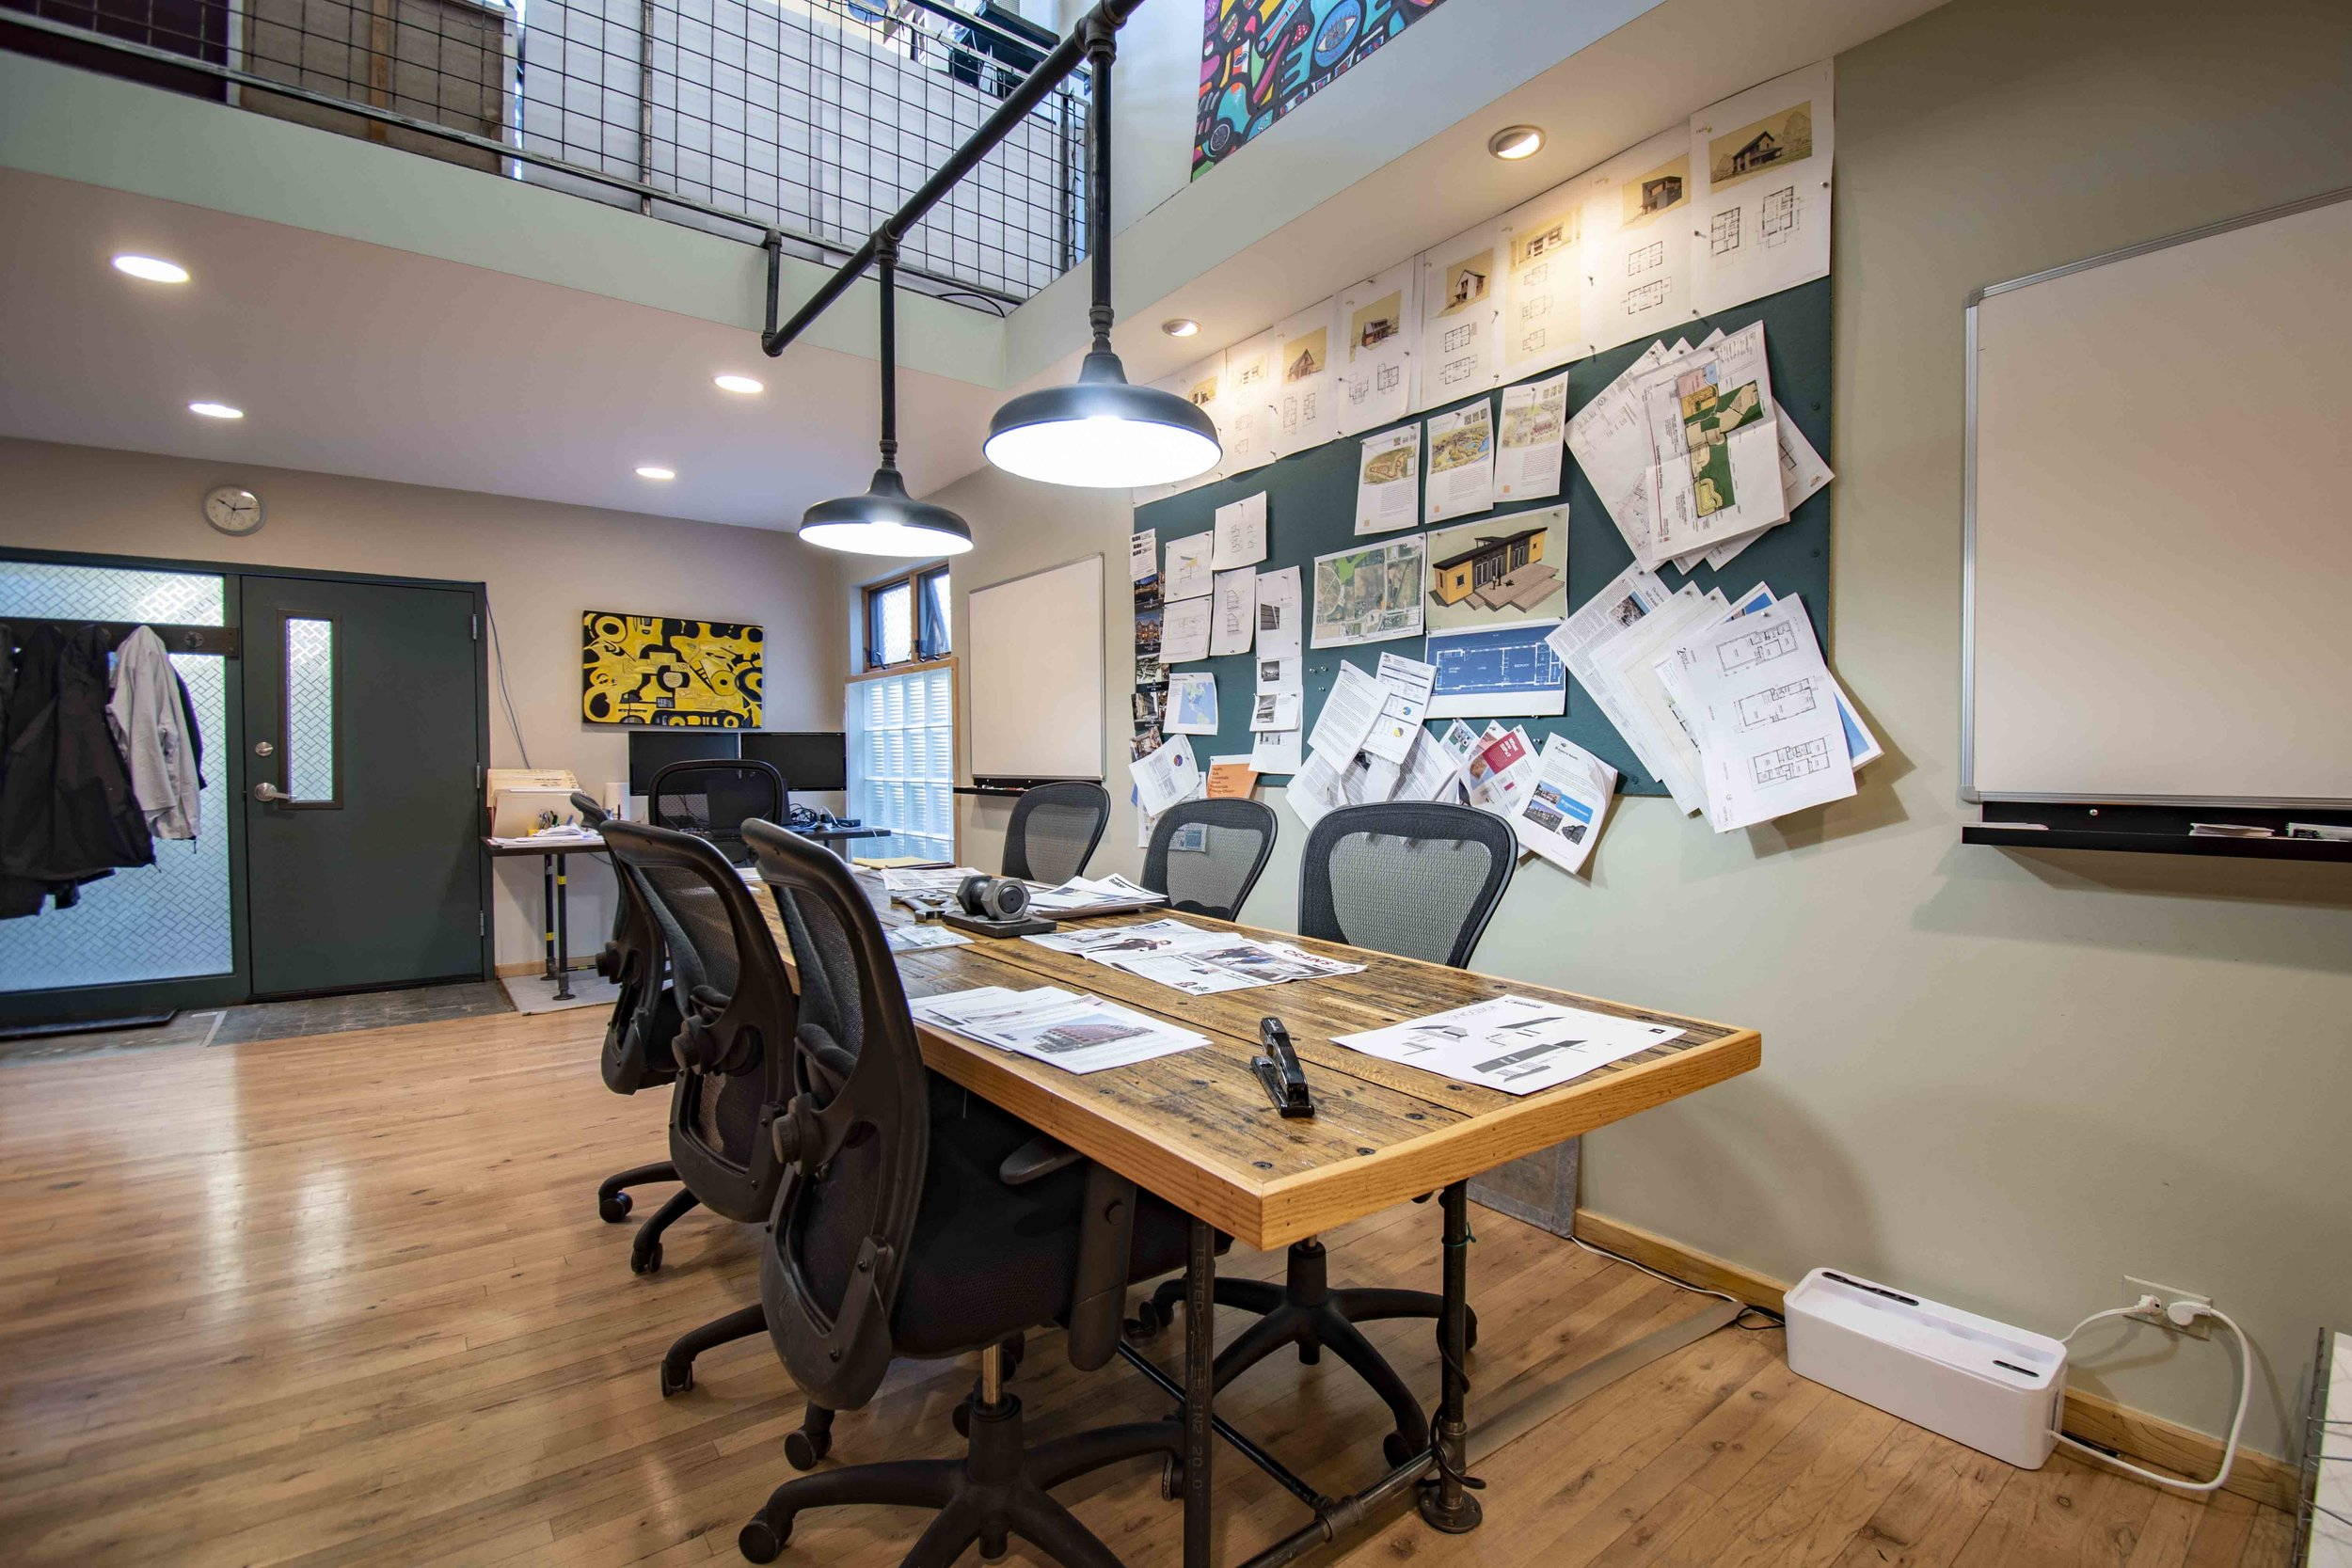 WORk/LIVE SPACES - What is it that makes the work/live lifestyle so appealing? Look through our list of spaces and see what makes them unlike any others.